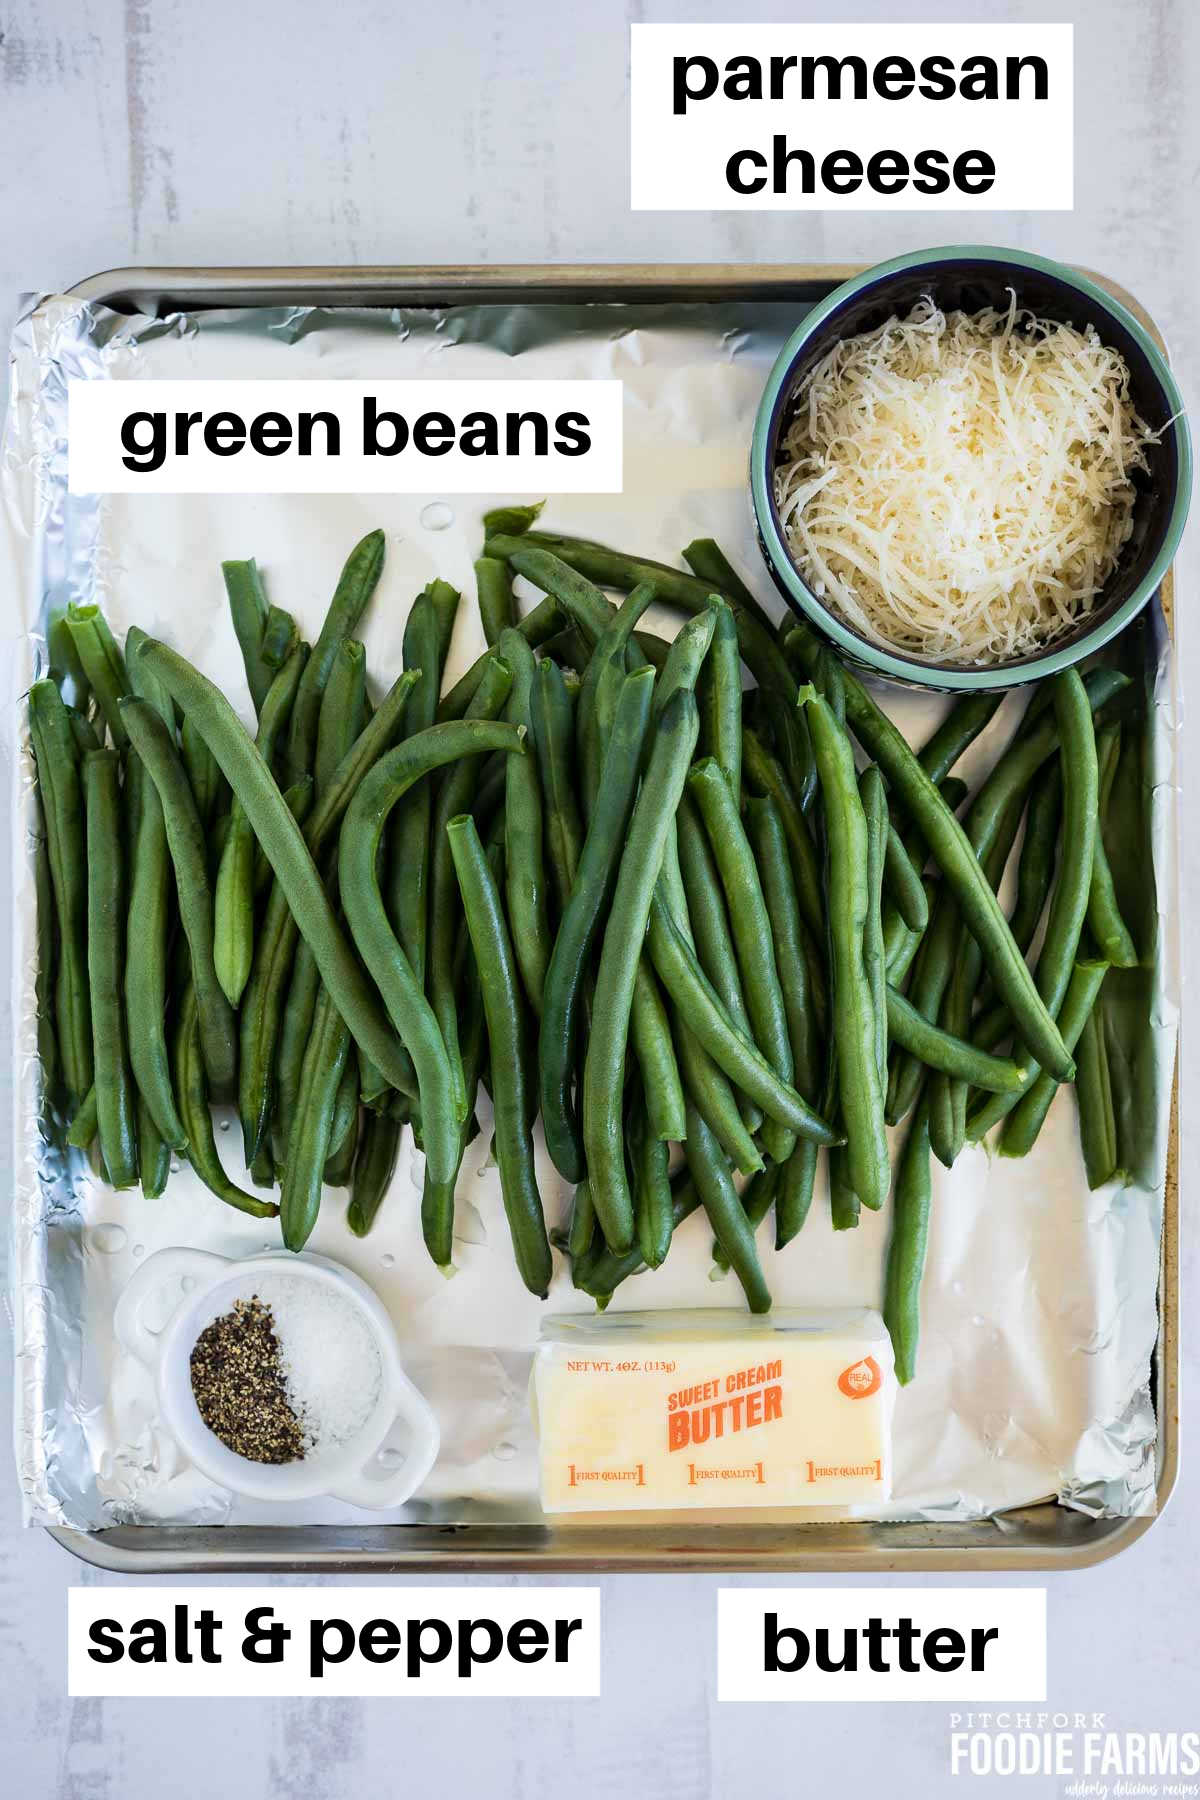 A sheet pan with fresh green beans, a cube of butter, salt and pepper, and grated parmesan cheese.